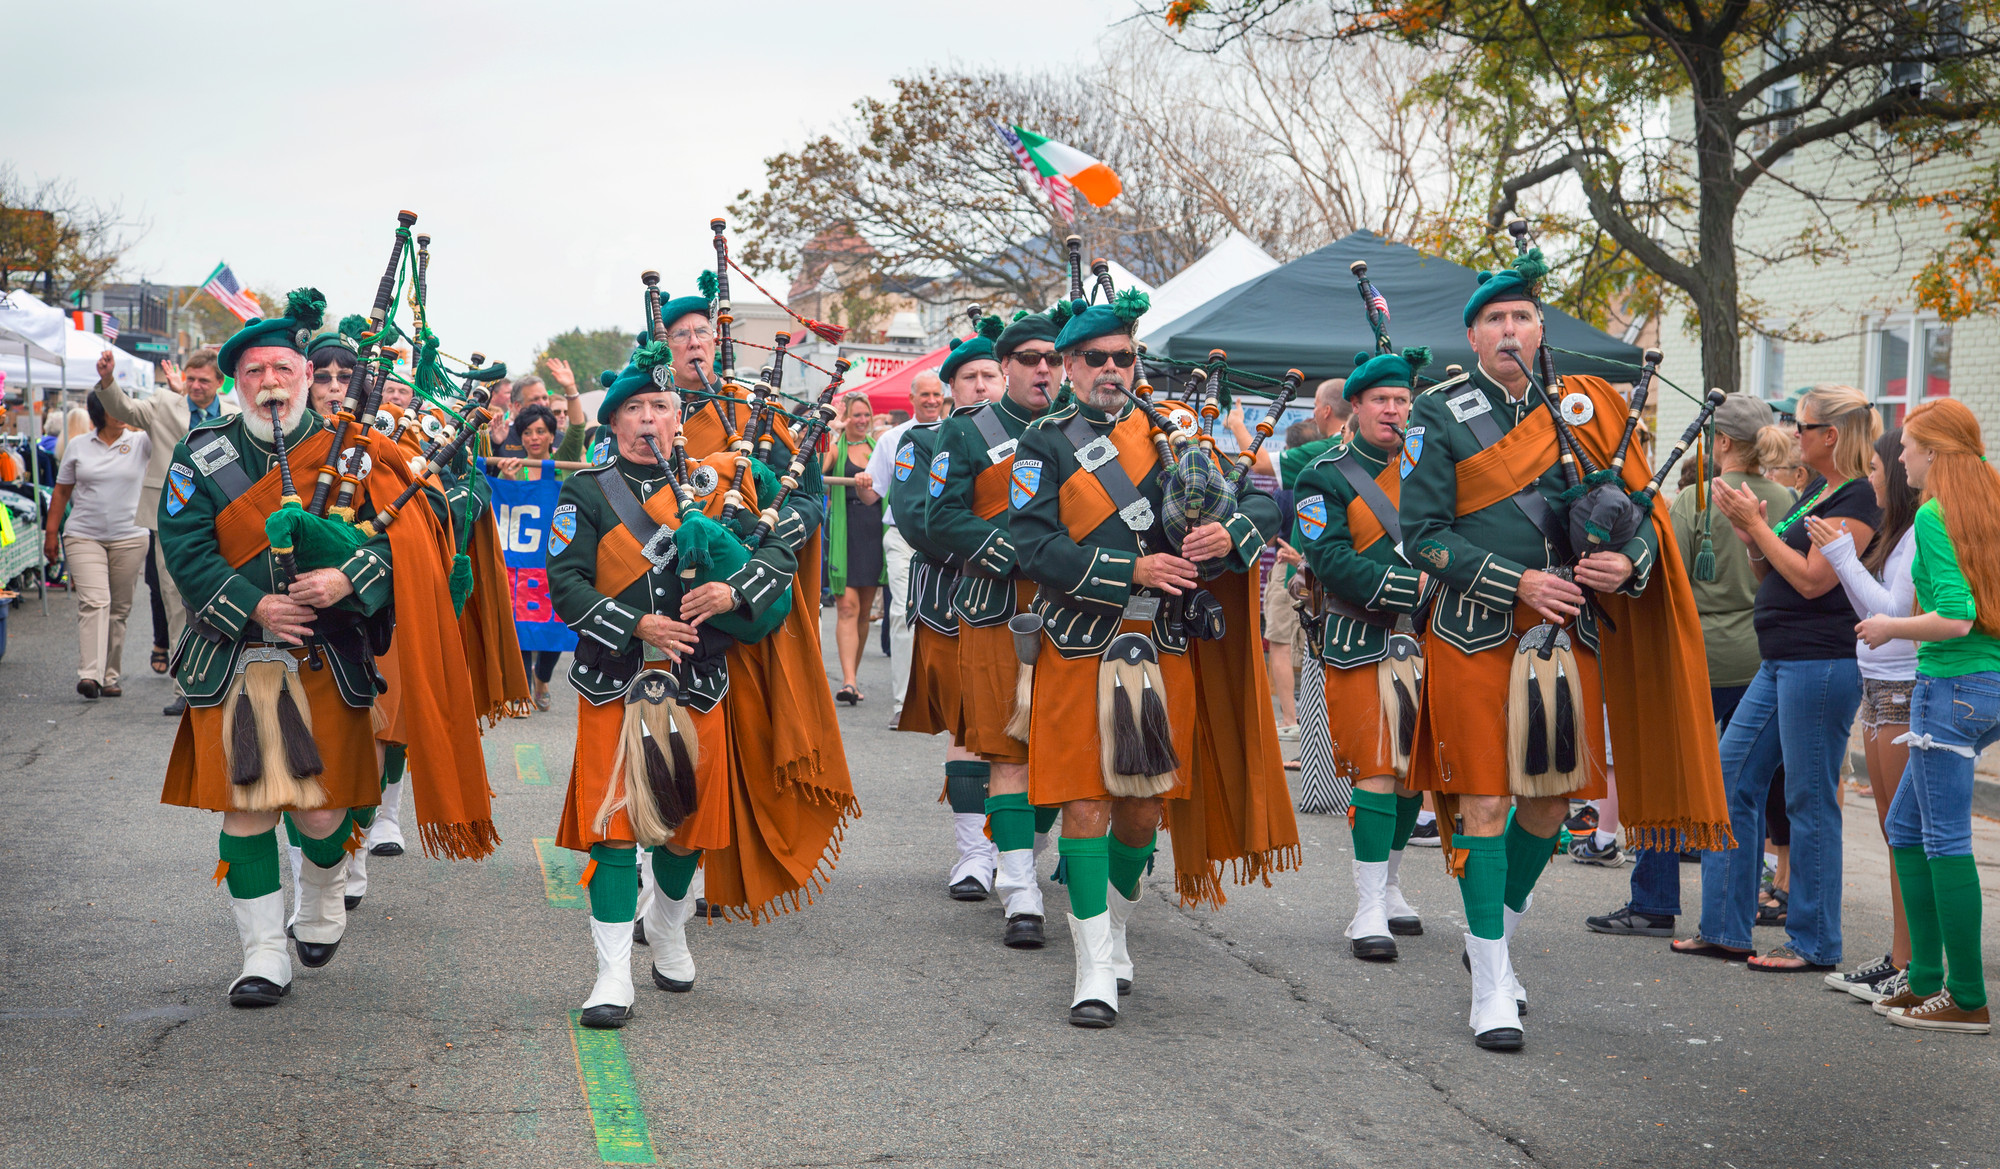 Bagpipes and drums filled the air as the parade marched down West Beech Street.